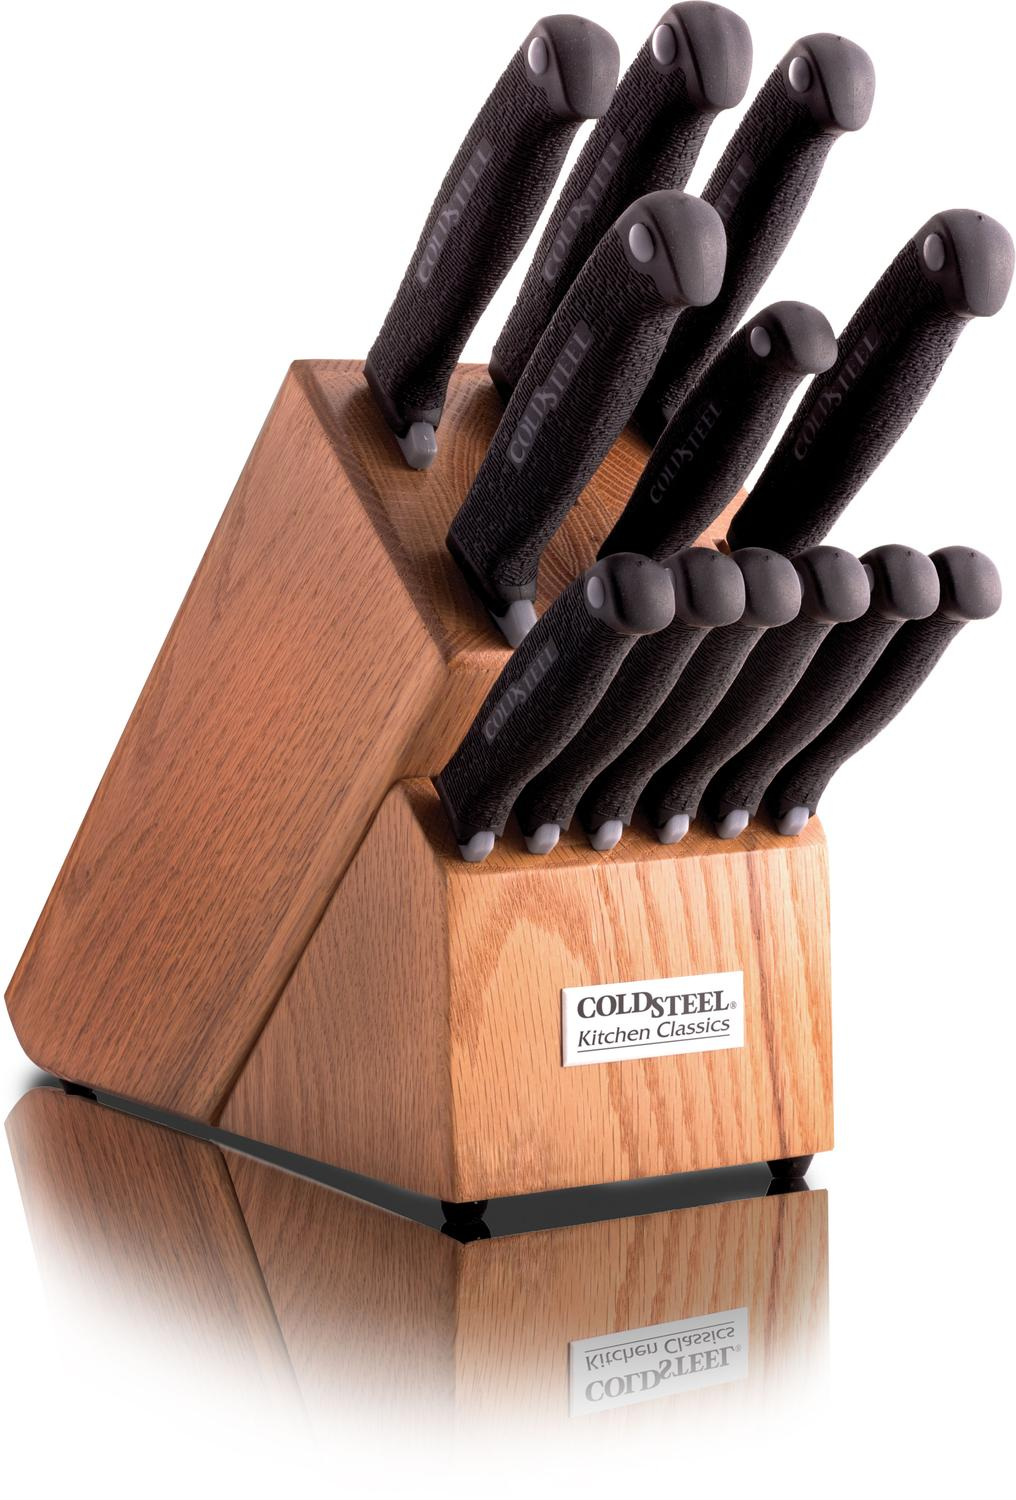 Cold Steel Kitchen Classic Set Knives With Block